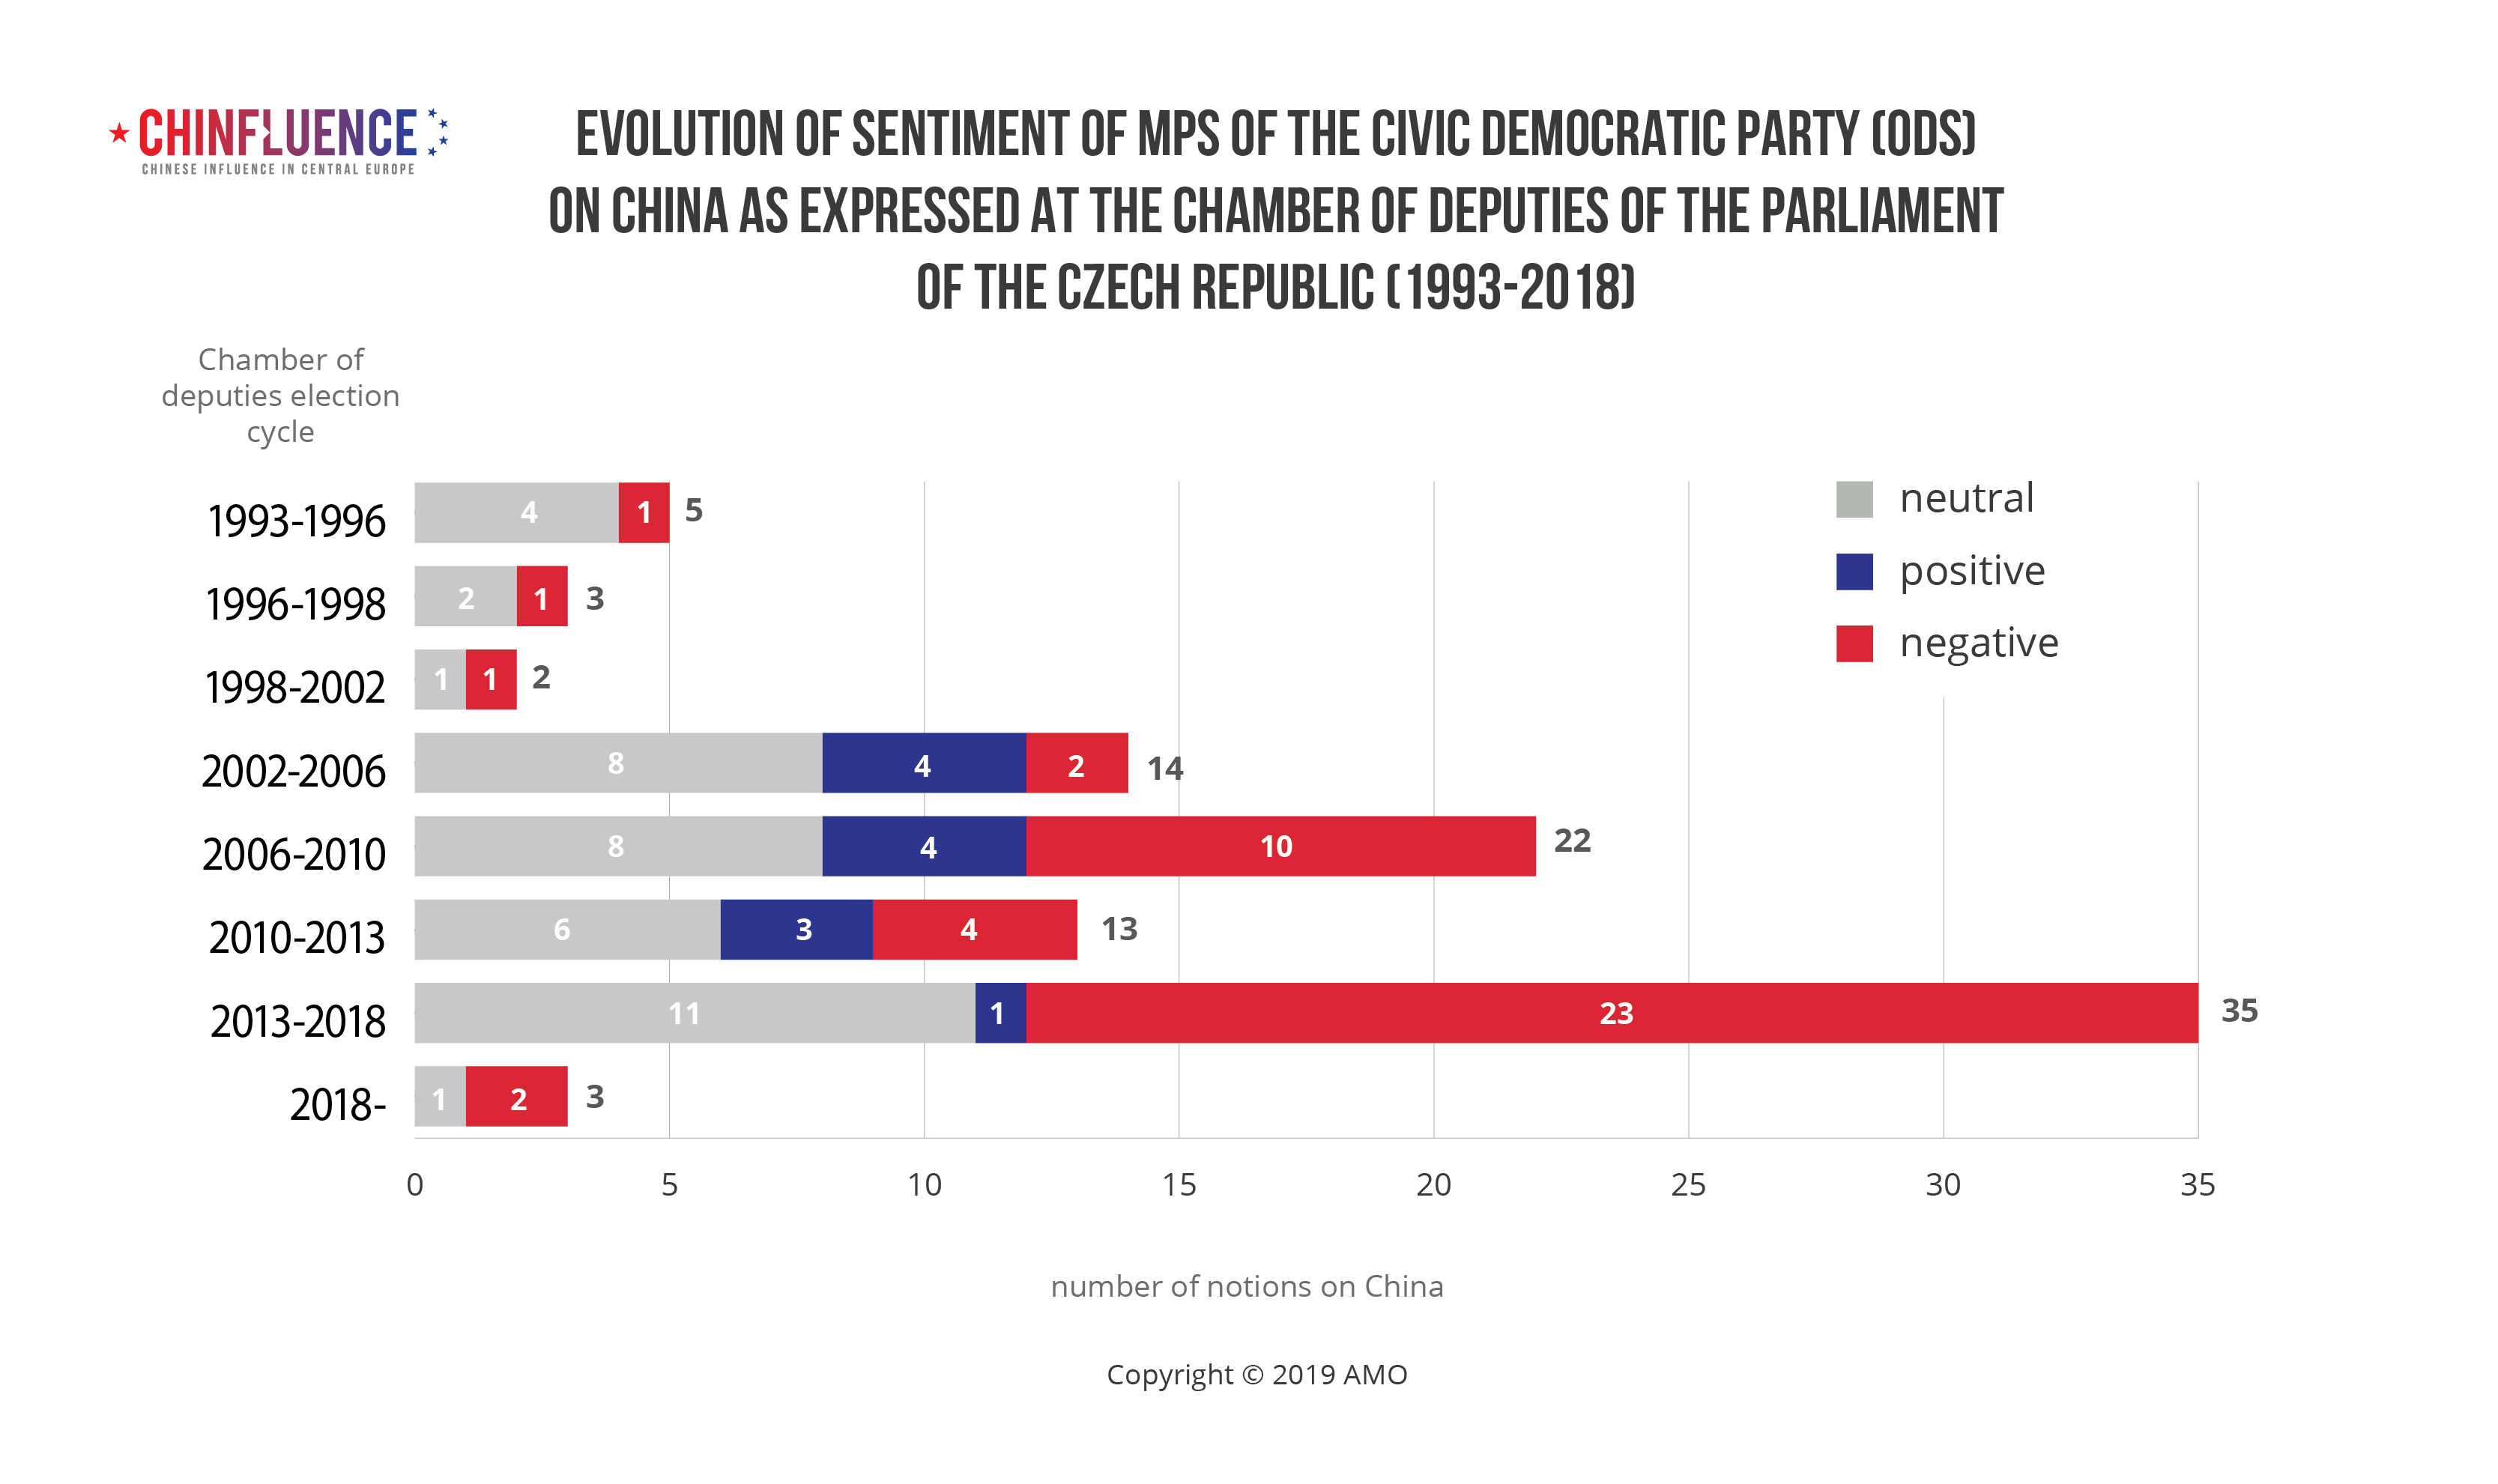 Evolution of sentiment of MPs of the Civic Democratic Party (ODS) on China as expressed at the Chamber of Deputies of the Parliament of the Czech Republic (1993-2018)